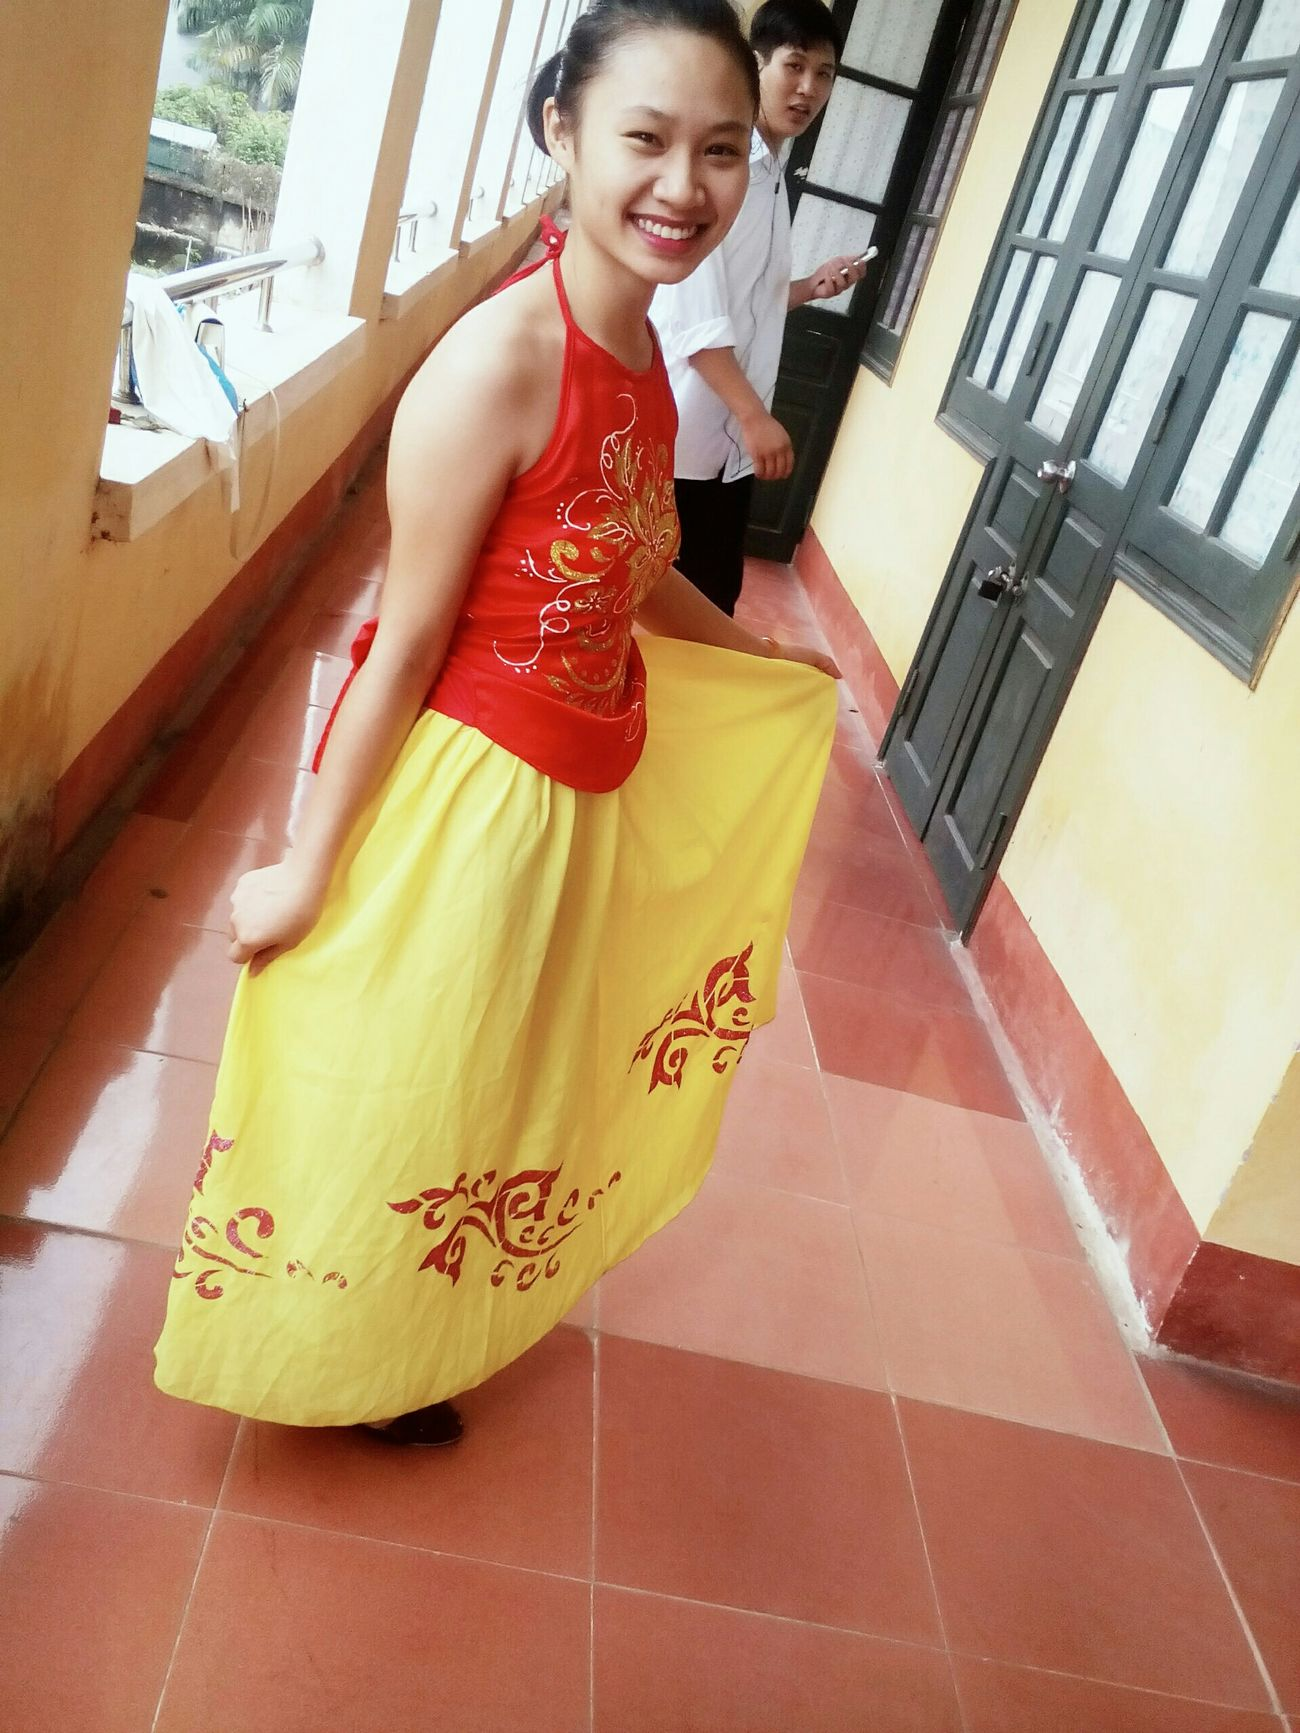 My friend is friendly and cheerful 😆 Váy Múa_hát Ngày_20/11 Classmate Cute Girl Dance Dance_skirts Vietnamese Vietnamesegirl School Saycheese